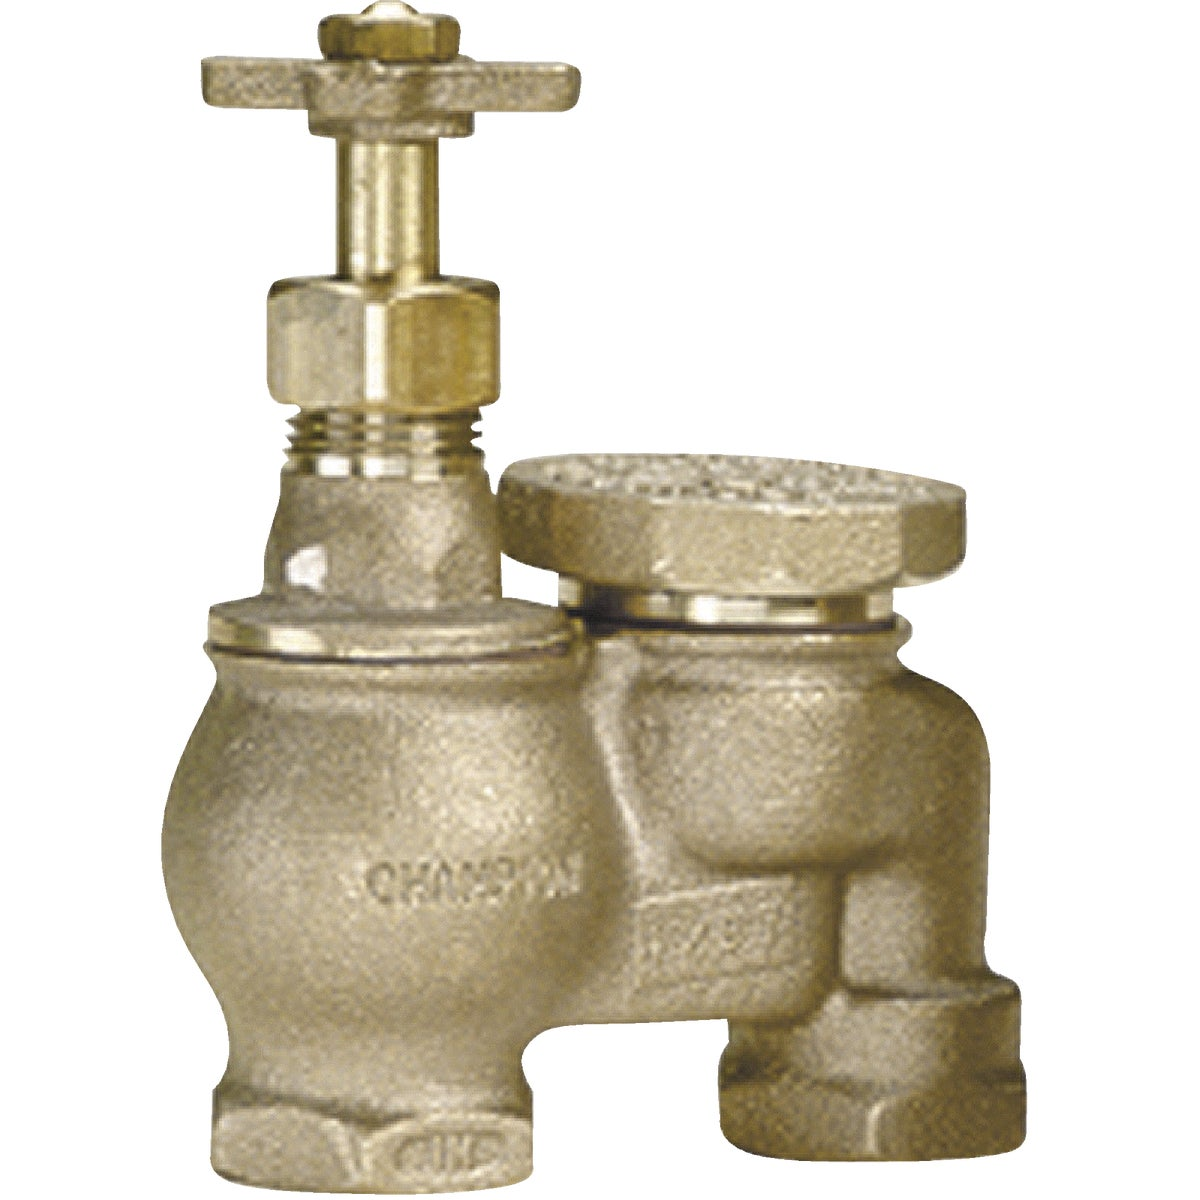 "3/4"" ANTI-SYPHON VALVE - IASV075 by Champion Arrowhead"